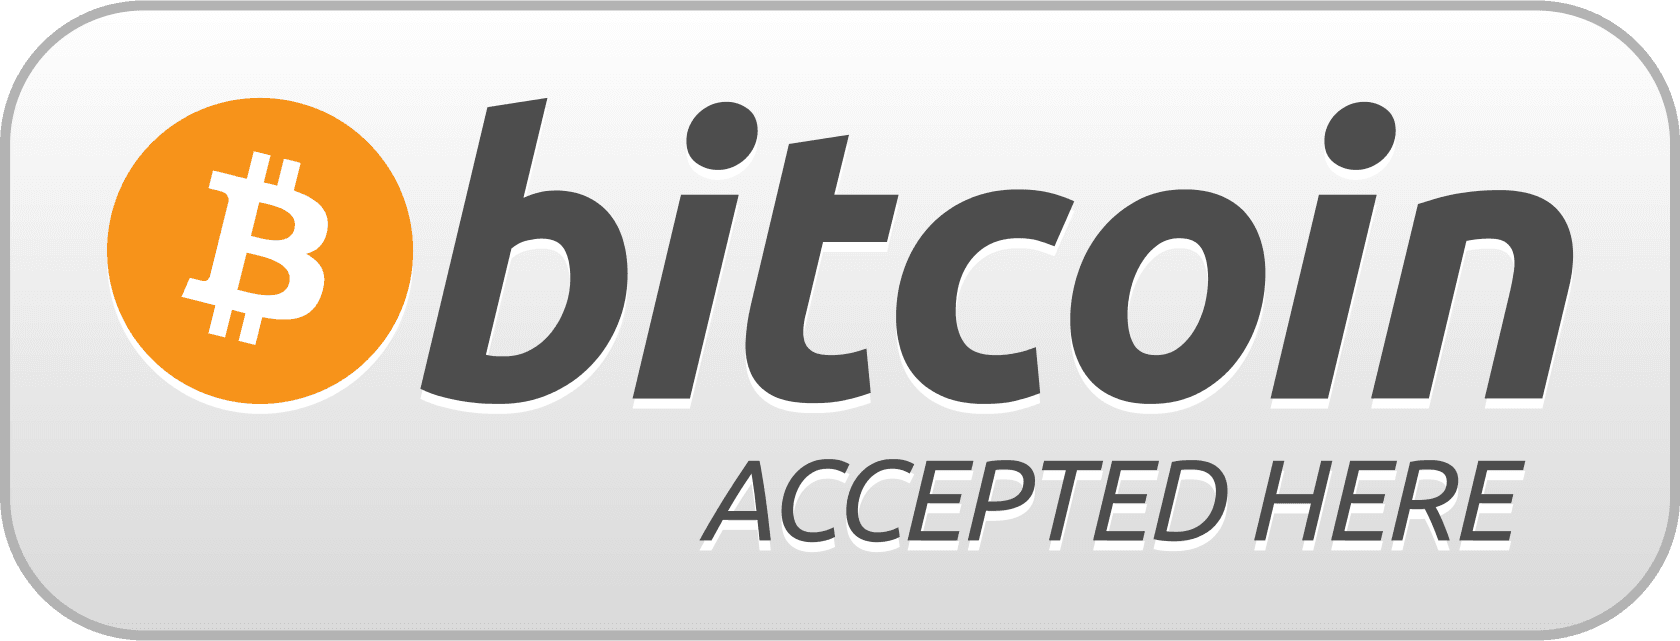 We now accept bitcoin for your luxury transportation services